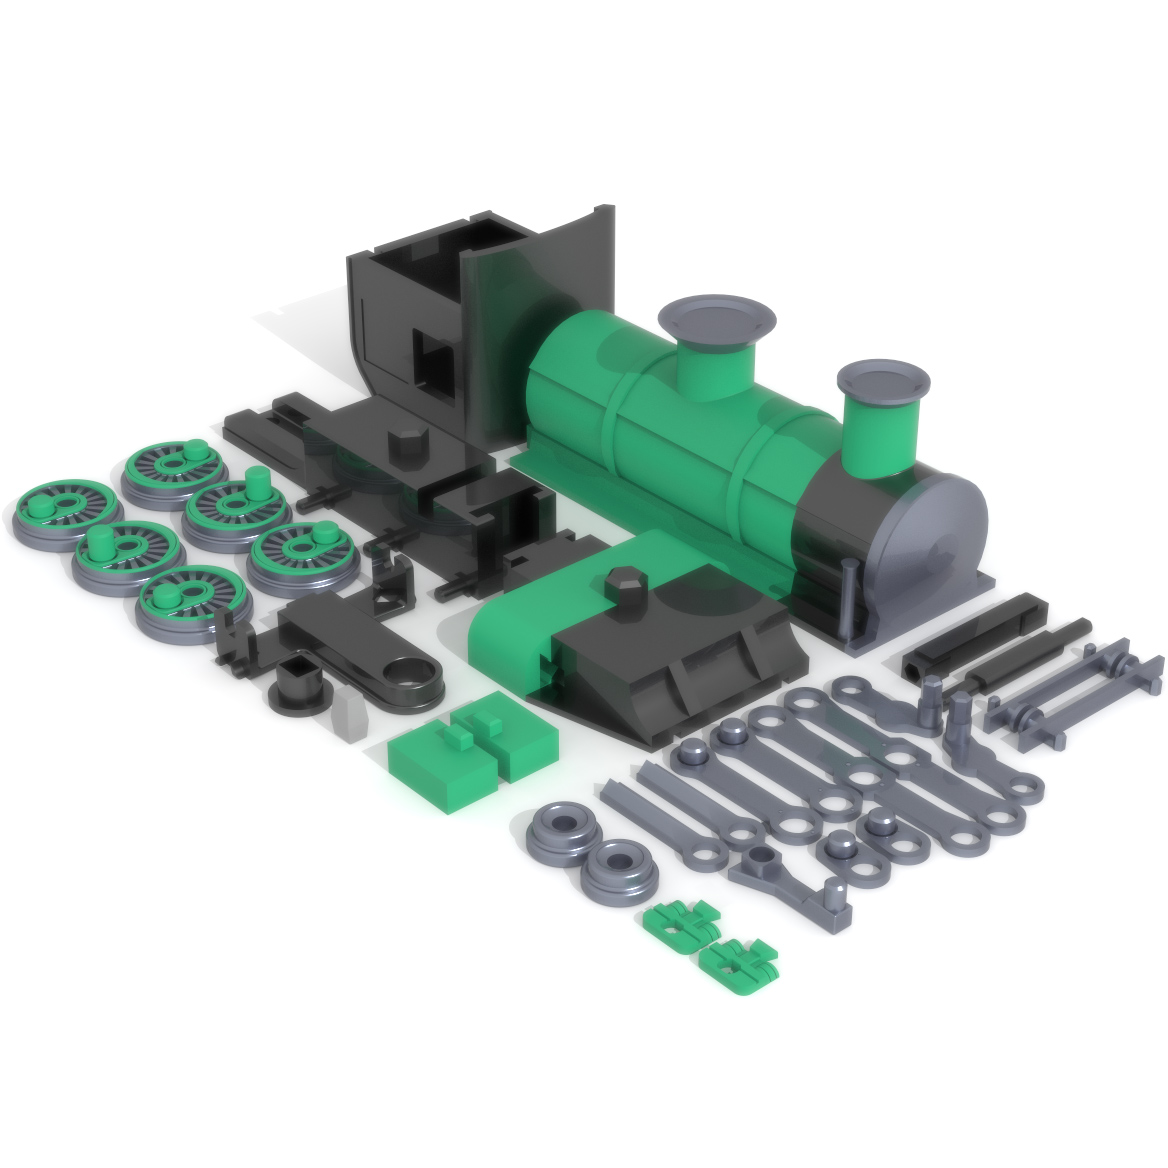 Steam Engine Print Bed, 3D Printer Models